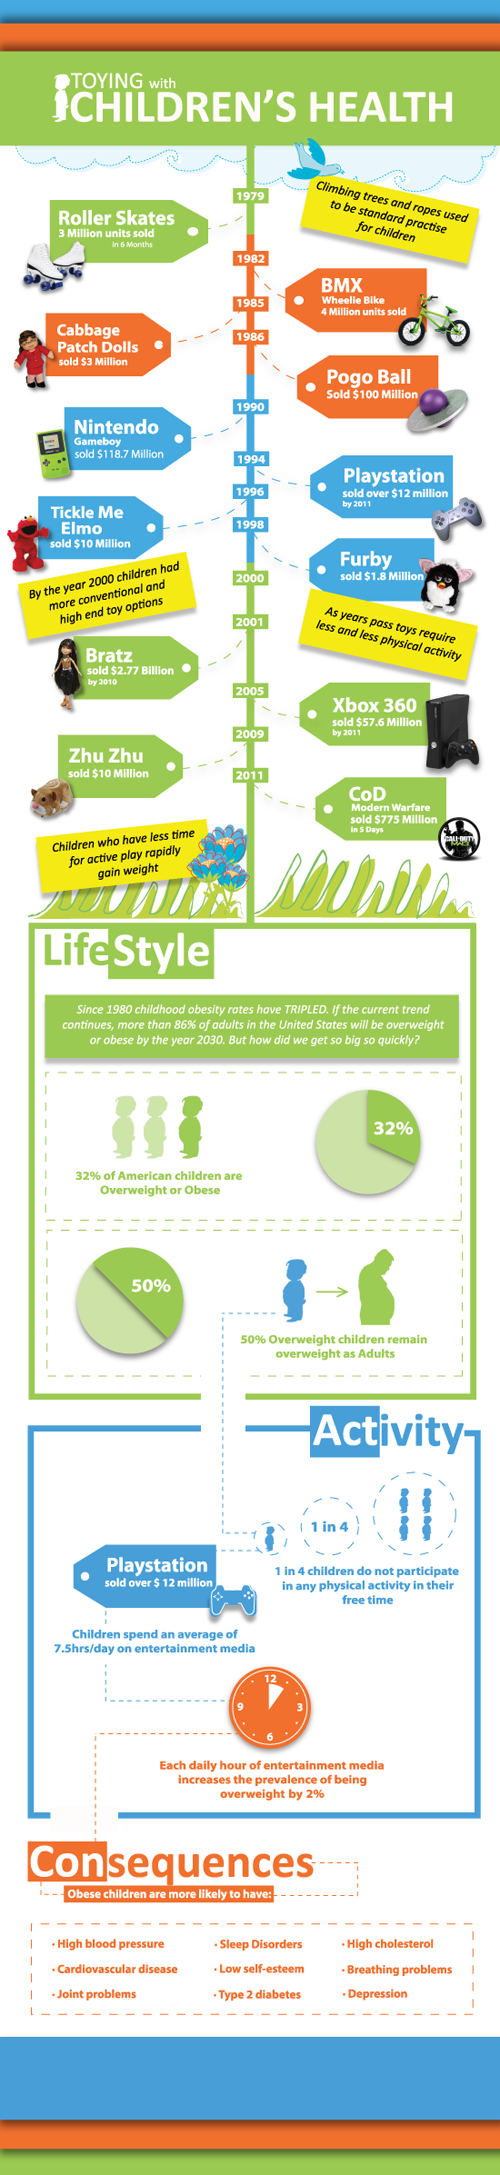 Are We Toying With Our Children's Health? Shocking Infographic!